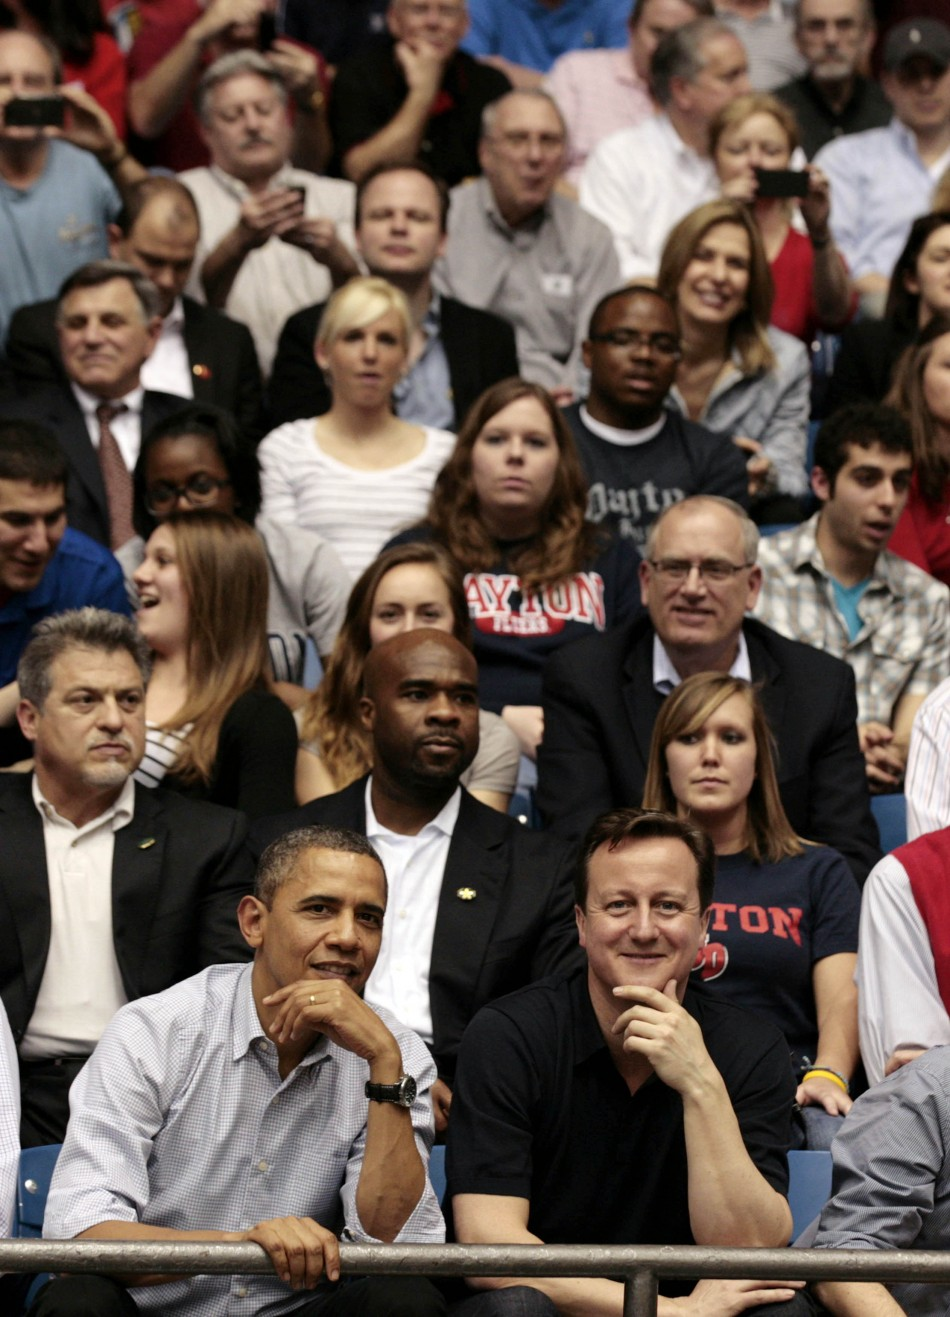 U.S. President Obama and British Prime Minister Cameron in crowd during NCAA basketball tournamnet